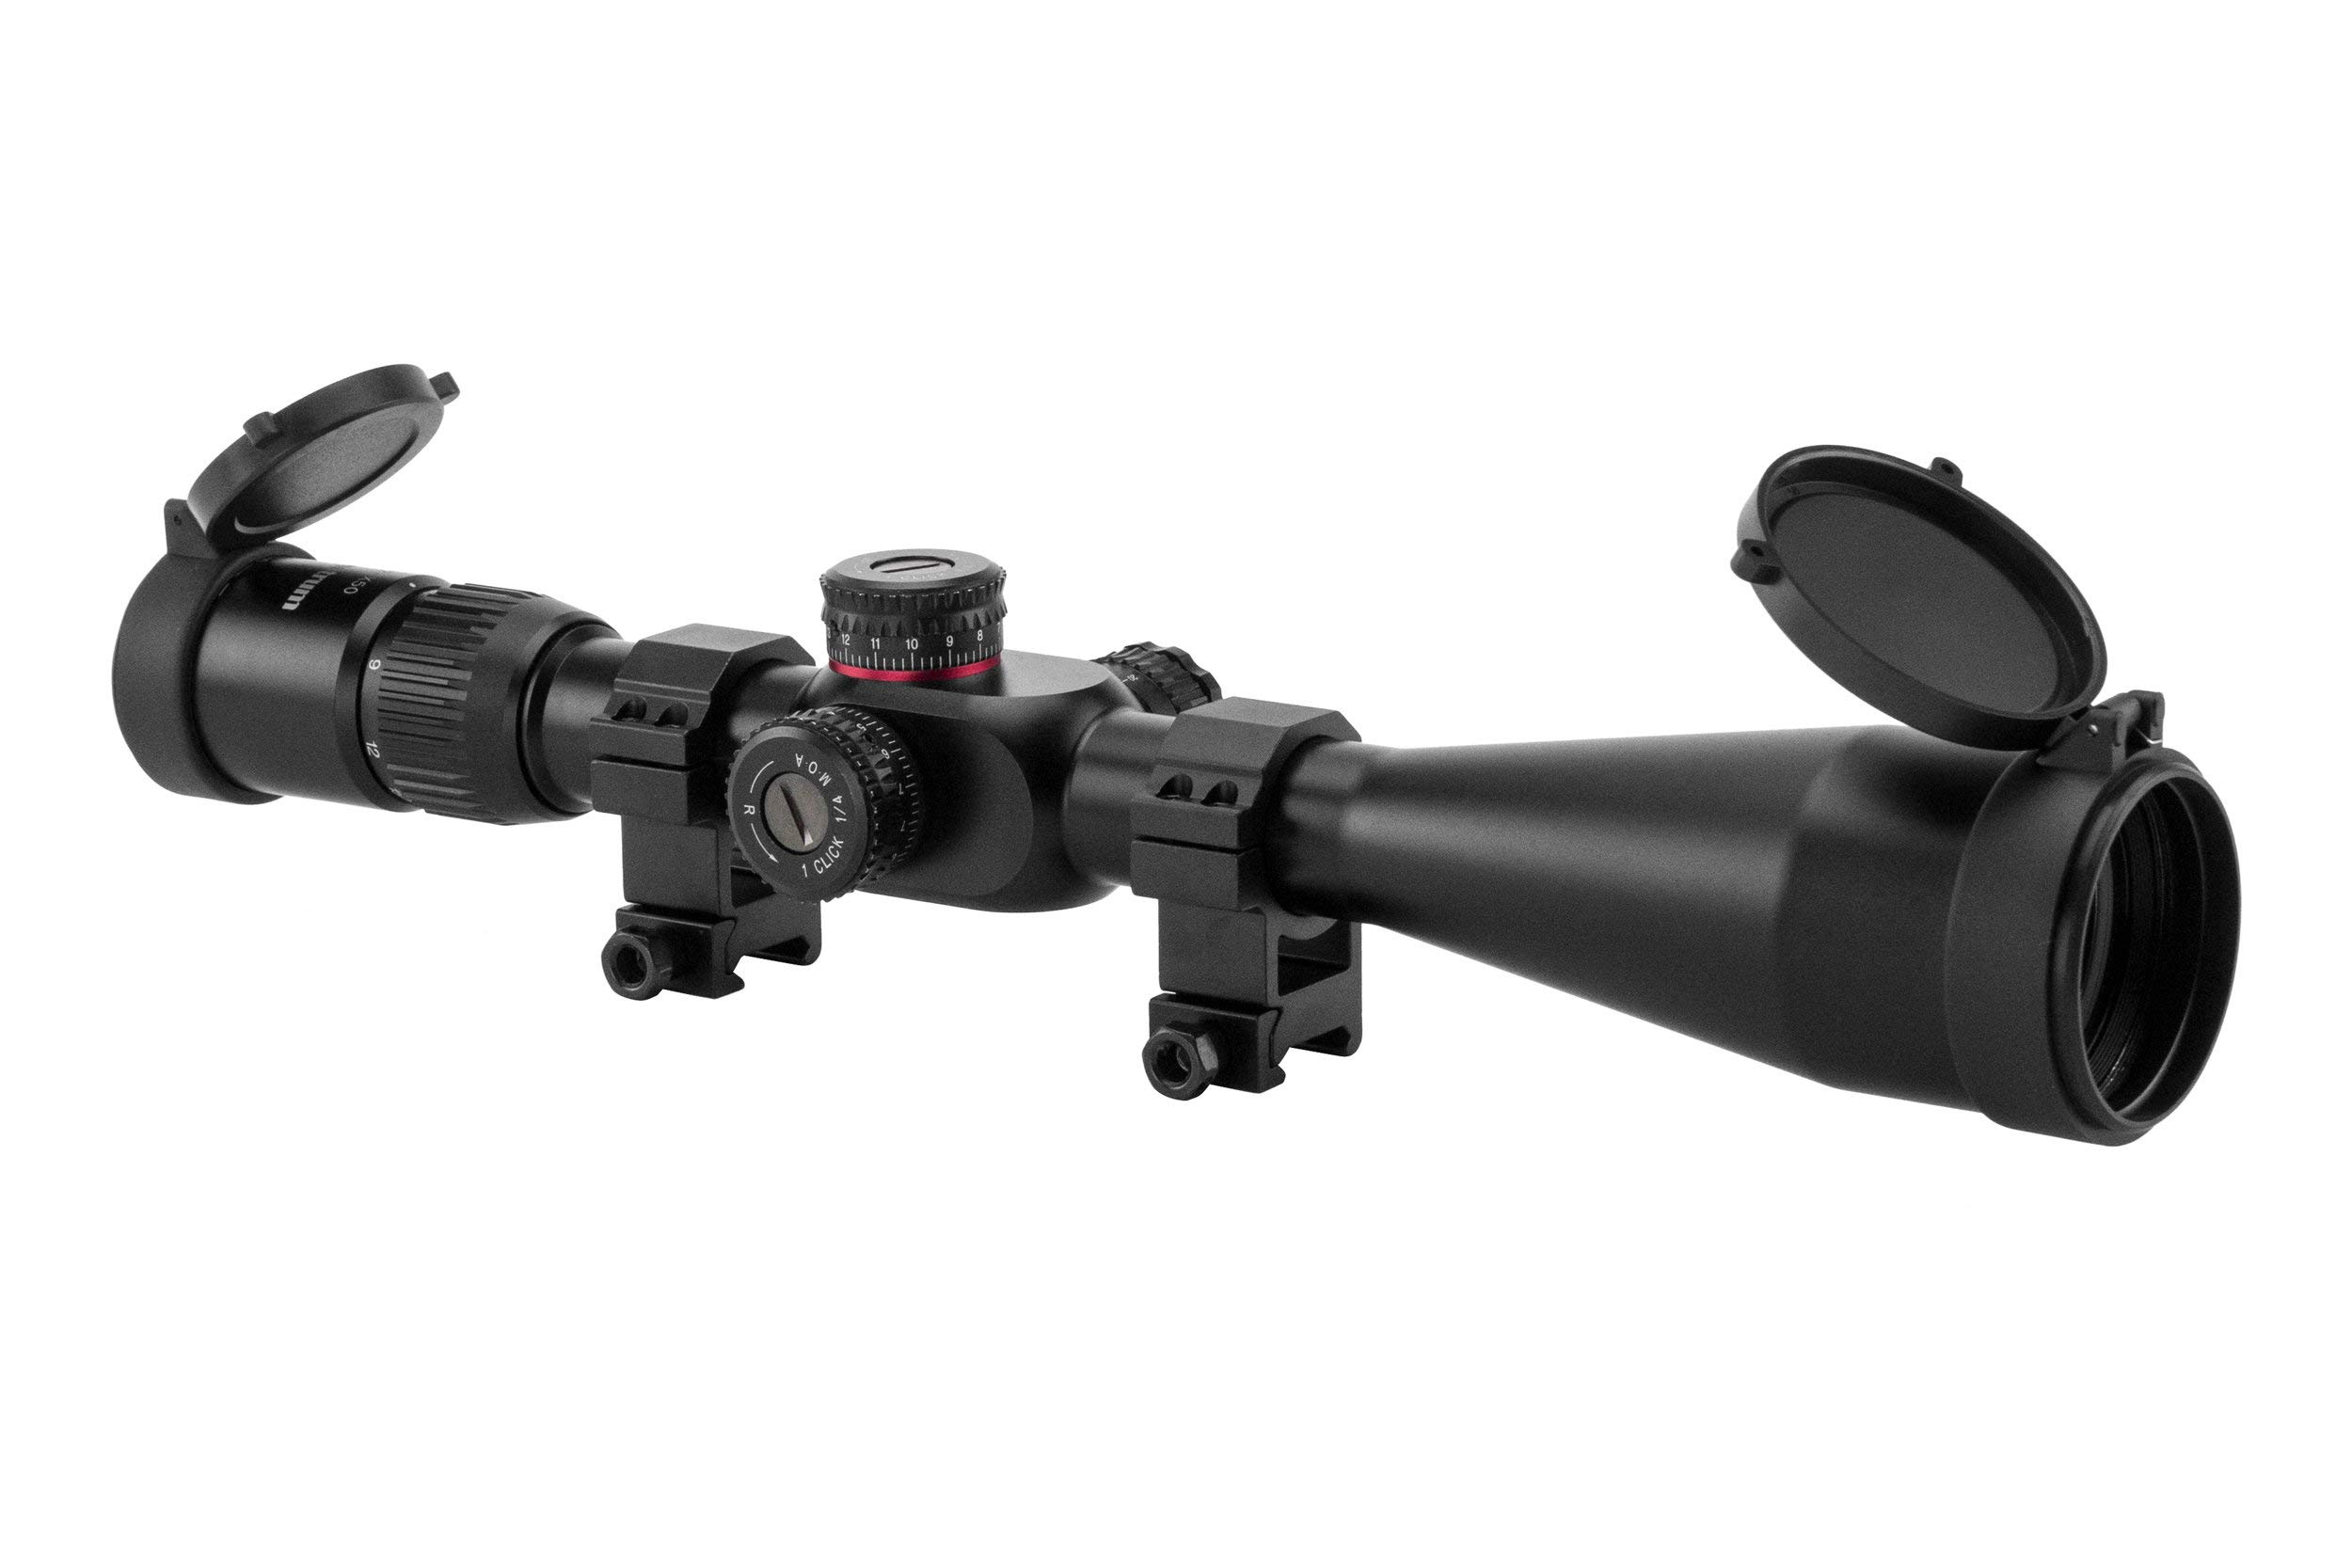 Monstrum G2 6-24x50 First Focal Plane FFP Rifle Scope with Illuminated Rangefinder Reticle and Parallax Adjustment   Black by Monstrum